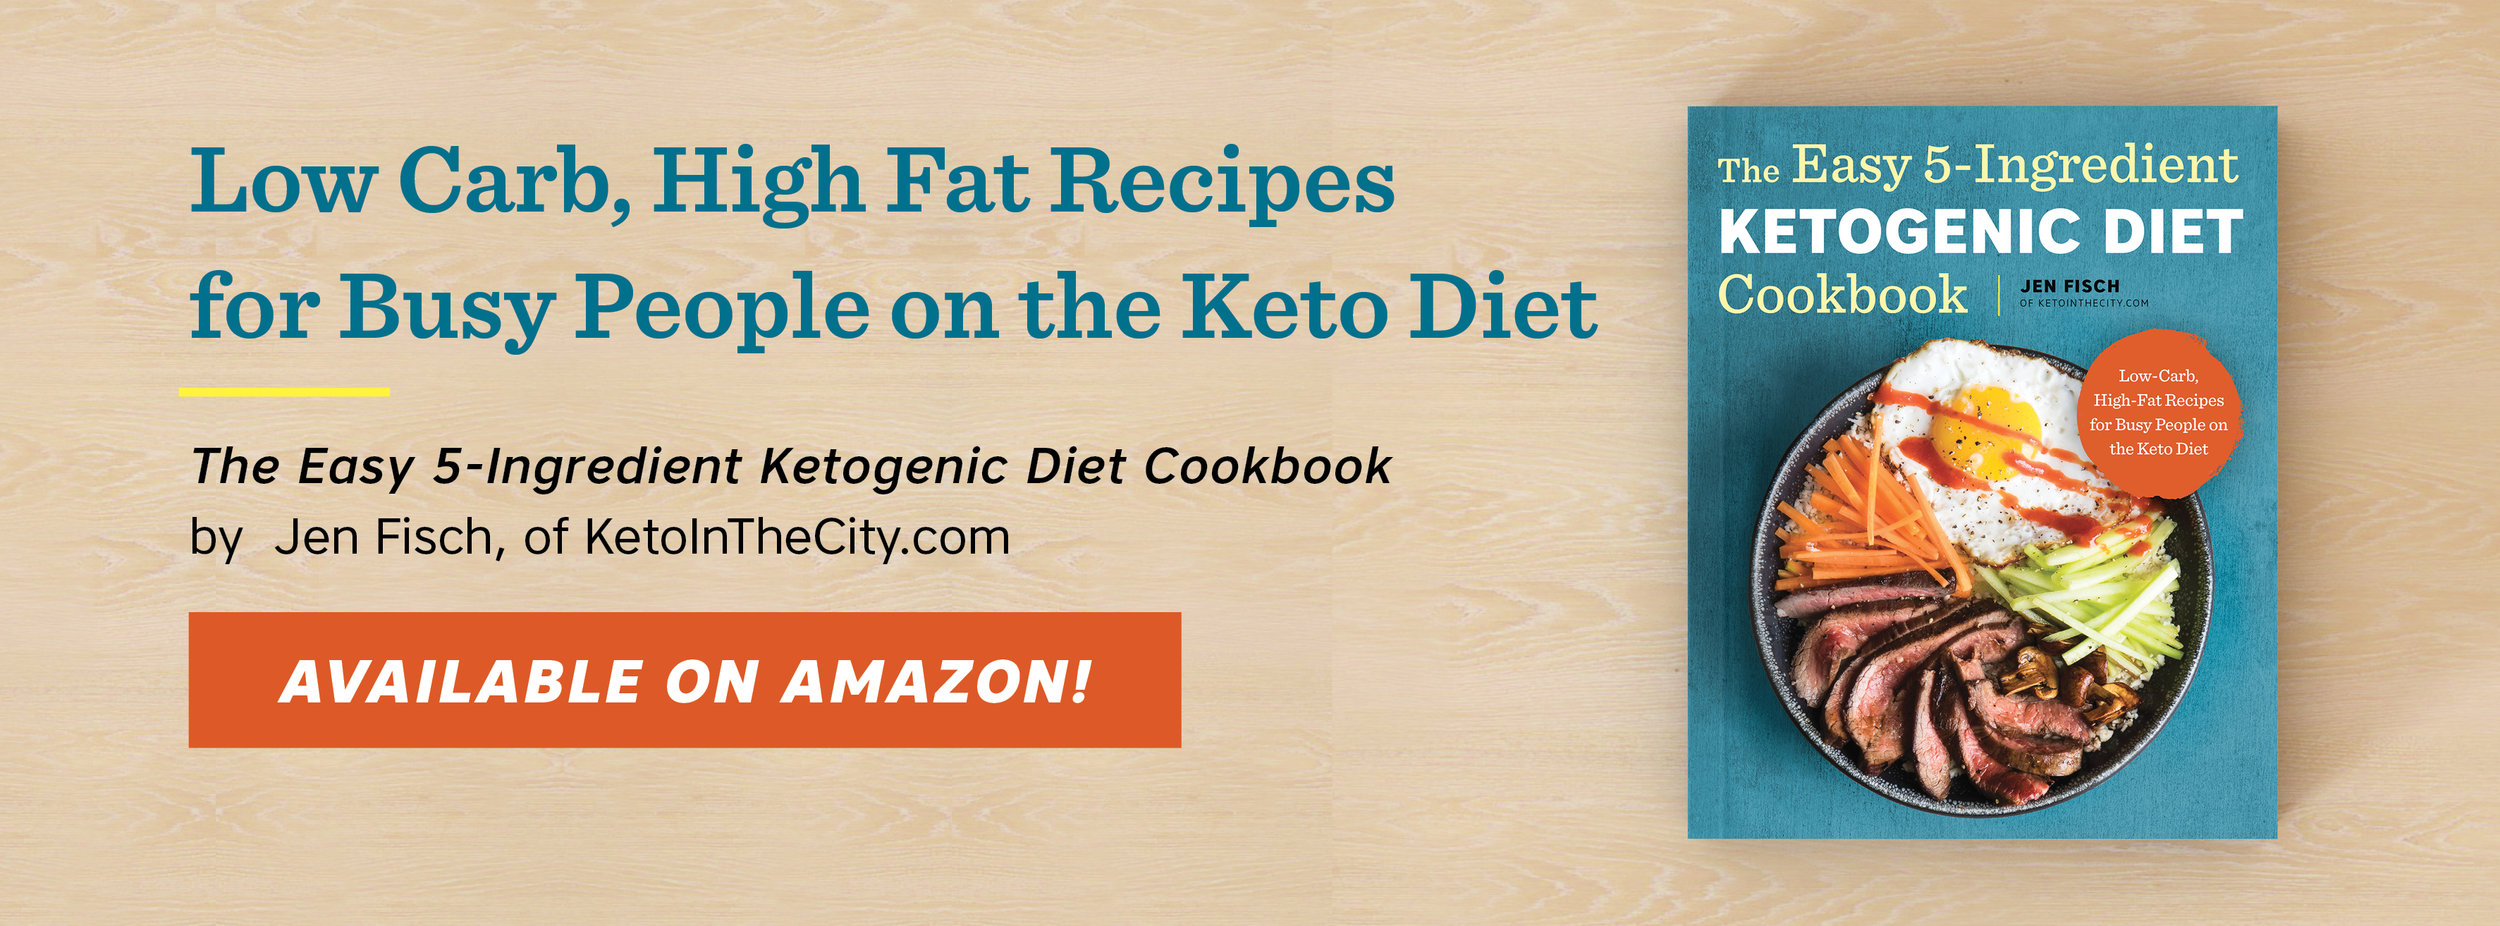 THE EASY 5-INGREDIENT KETOGENIC DIET COOKBOOK RECIPE: CHOPPED GREEK SALAD